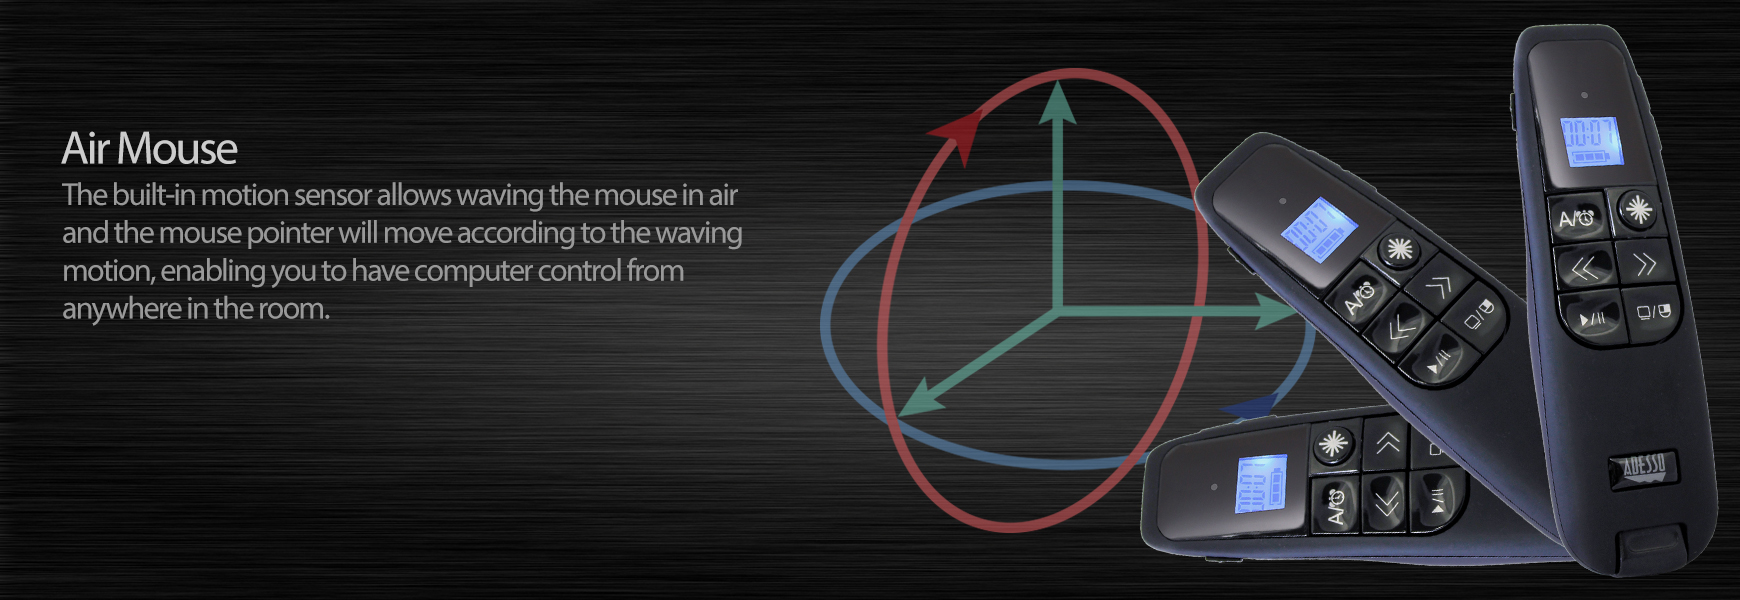 iMouse P30 - Wireless Presenter with Built-in Laser Pointer